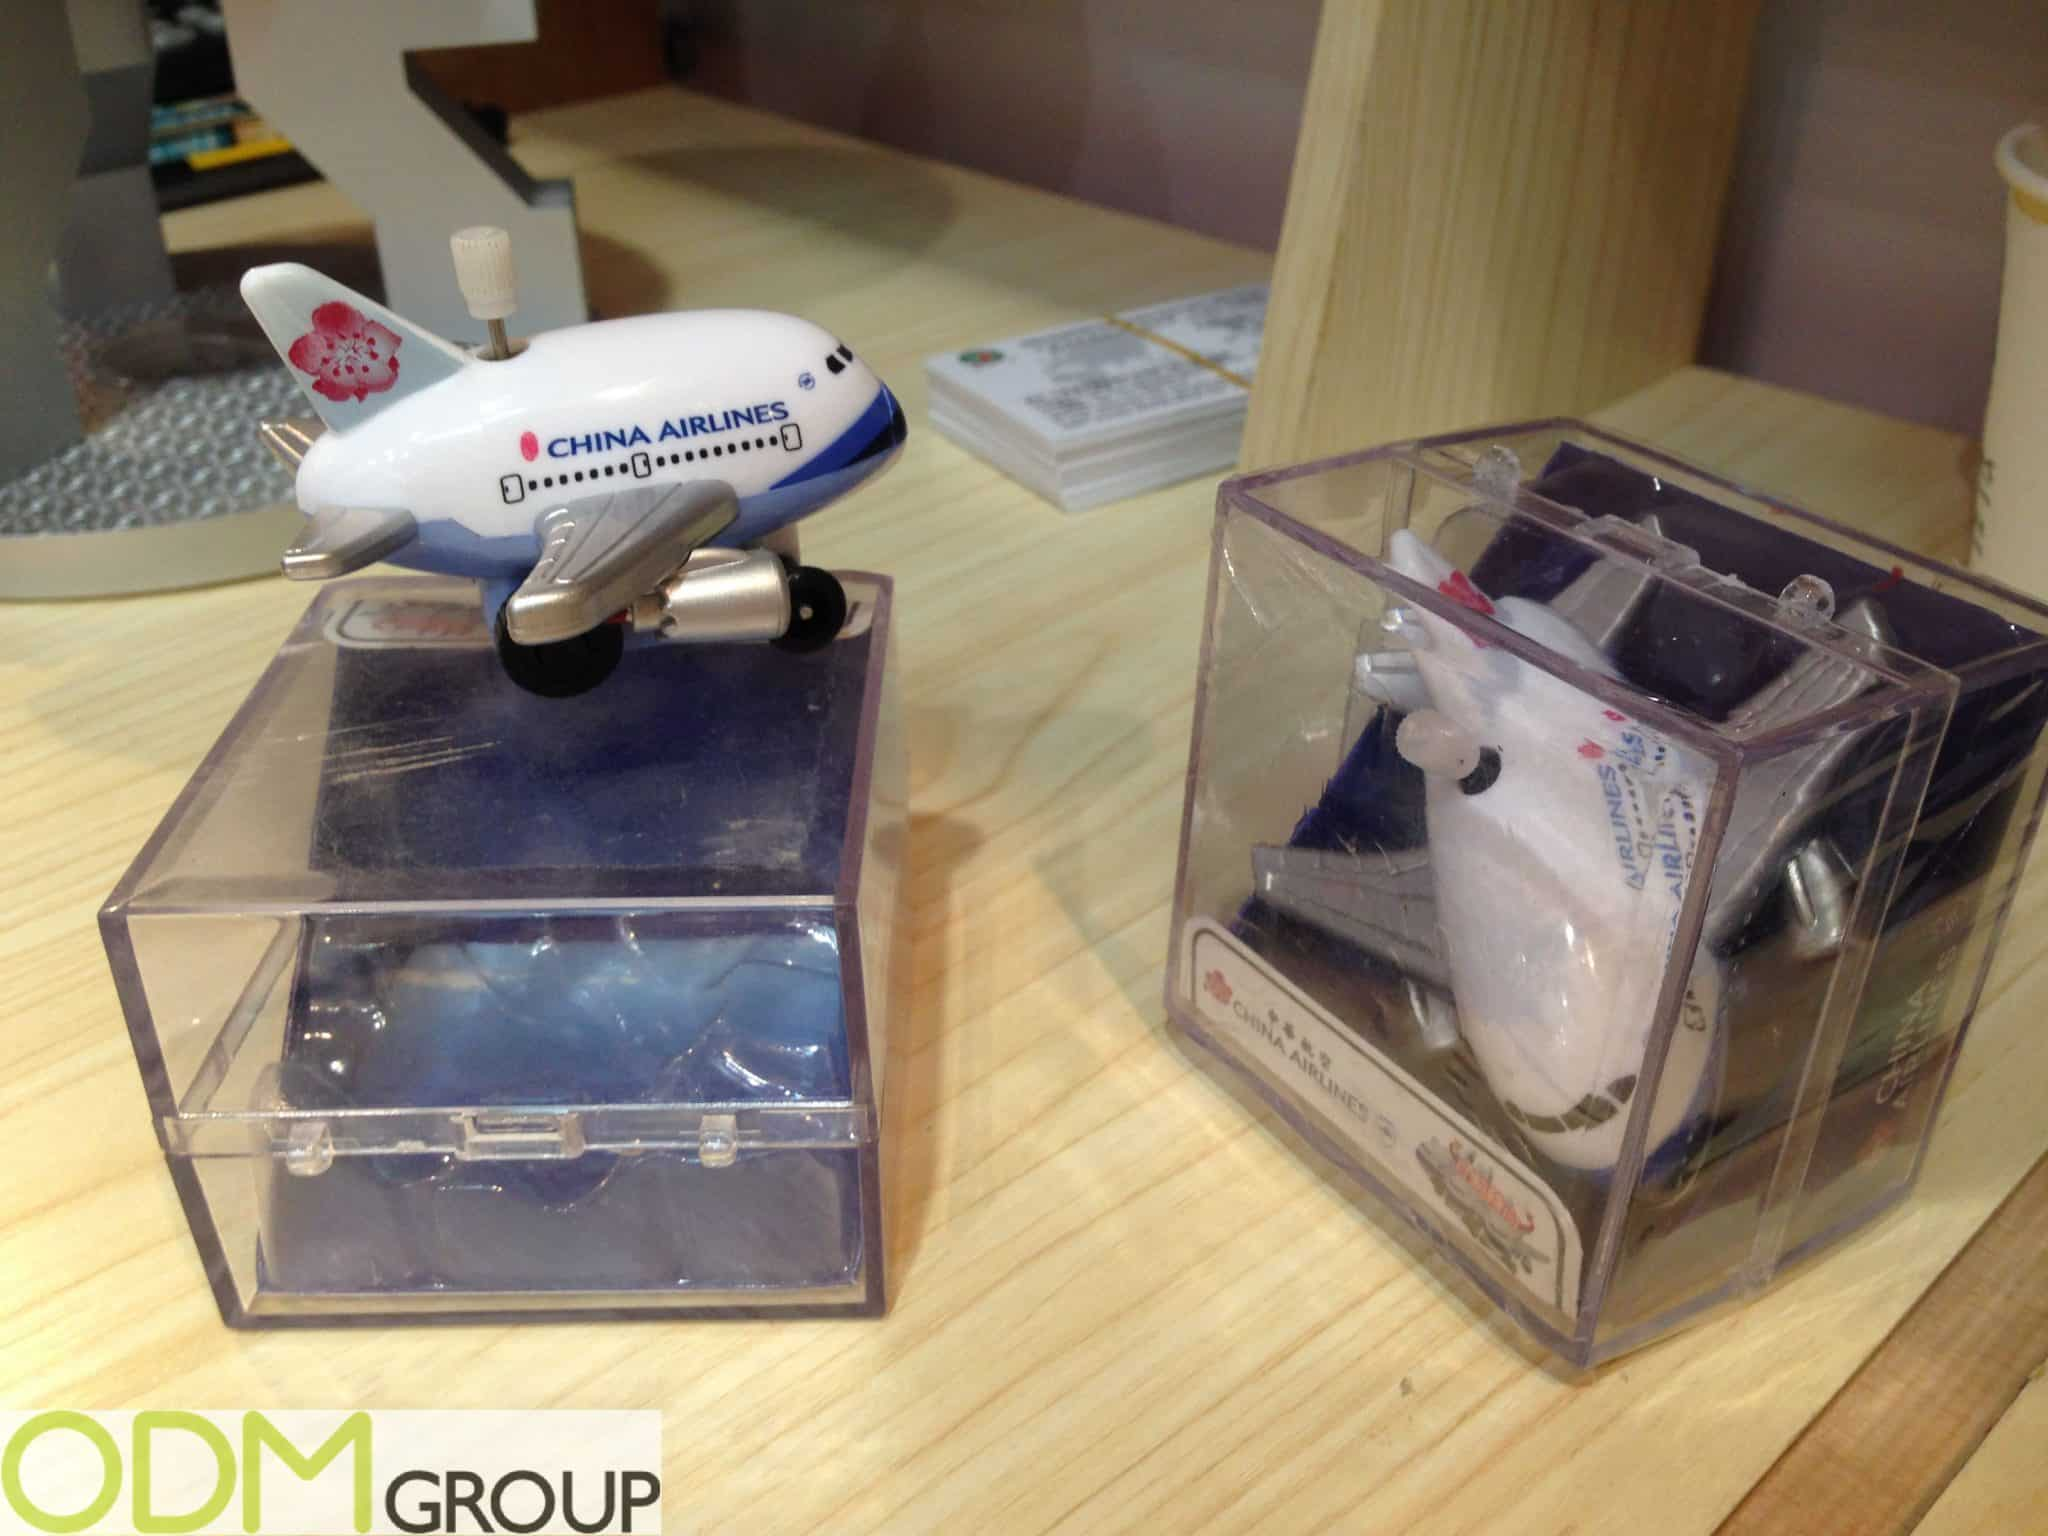 Custom Plastic Toys - Branded Merchandise for China Airlines